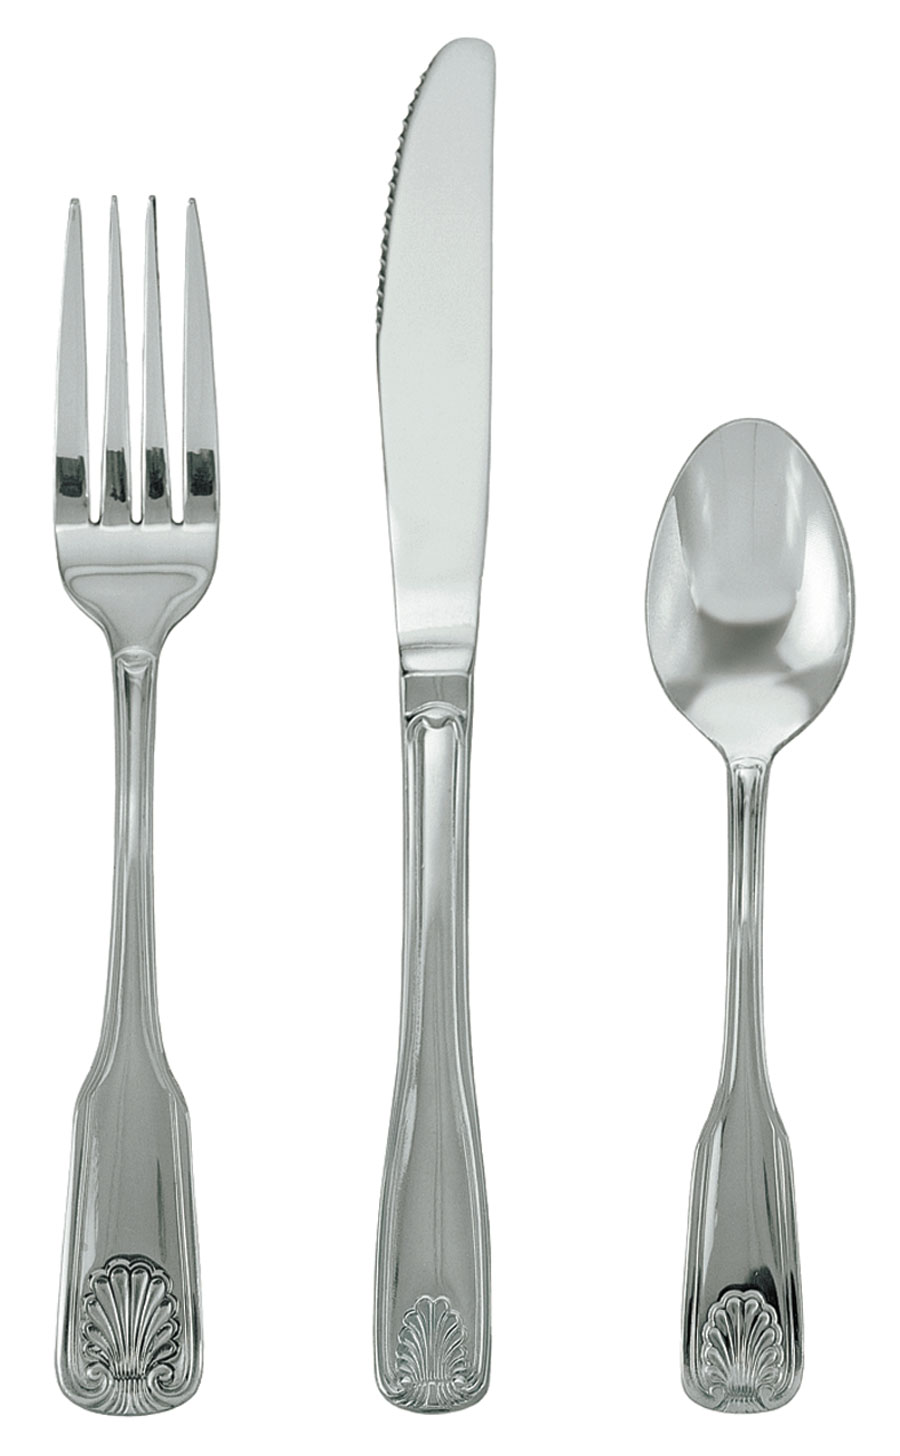 Update International SH-506-N Shelley Salad Fork 18/0 Stainless Steel -1 doz